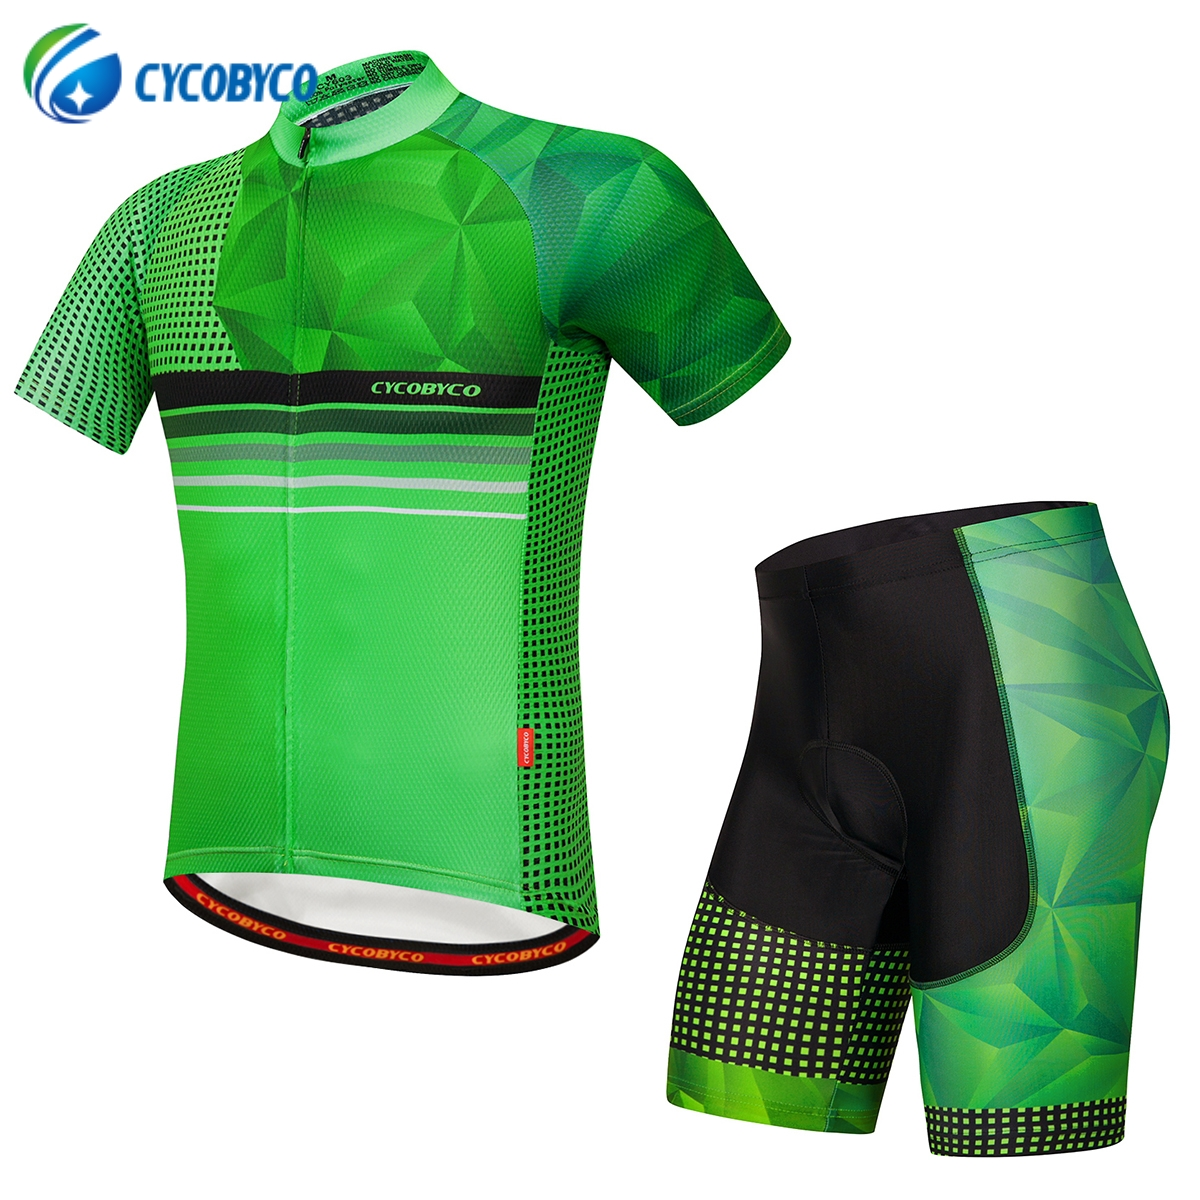 Cycobyco Cycling Jersey Short Sleeve Men MTB Bike Clothing Set Road Bicycle Shorts Padded Fluorescence Maillot Ropa Ciclismo cheji men original camouflage green cycling jersey mtb outdoor breathable bike short sleeve clothing bicycle jersey s 3xl